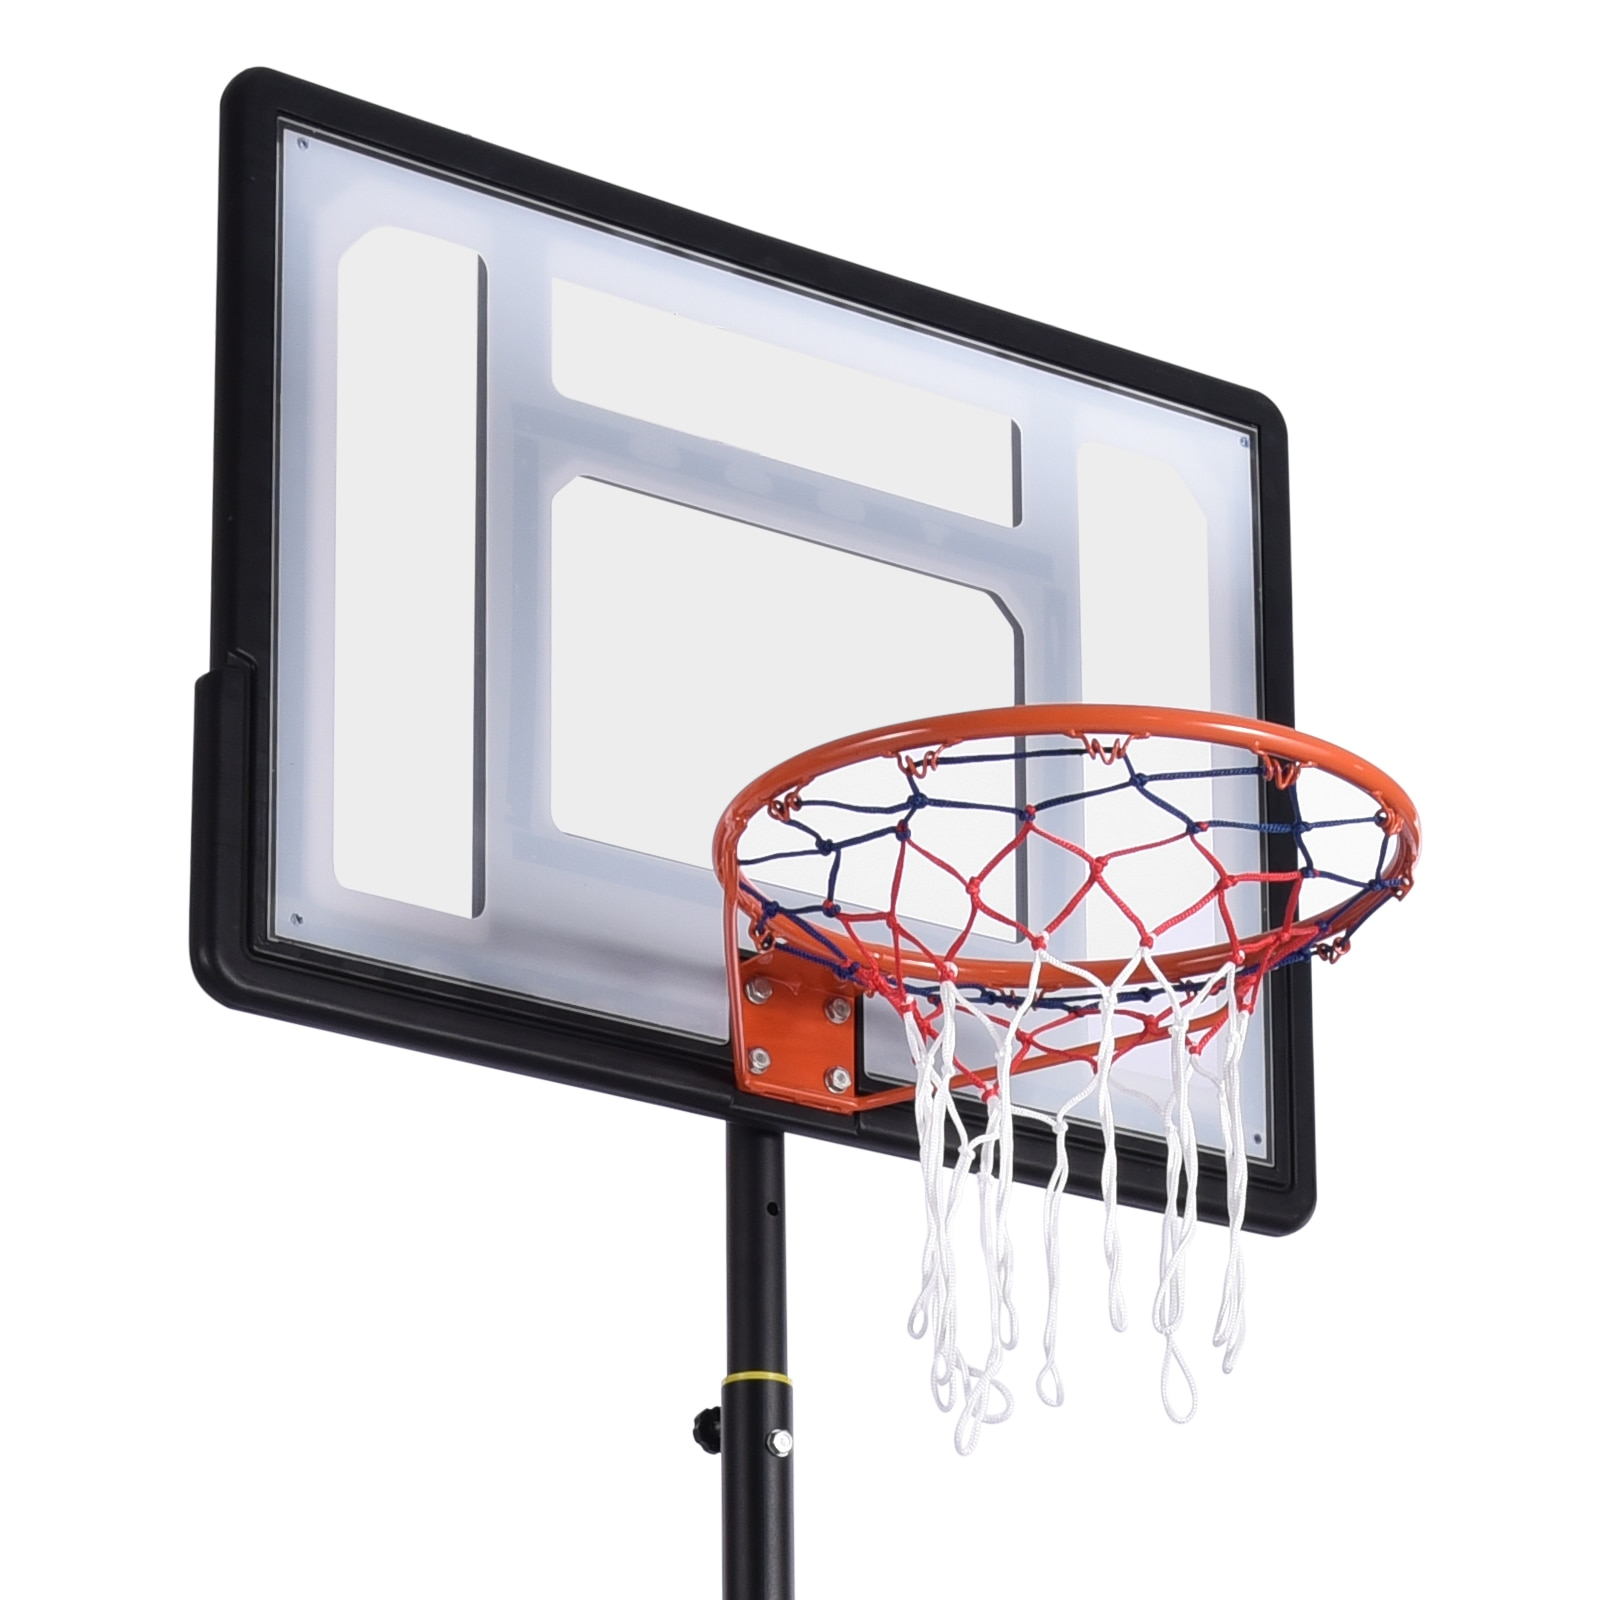 PVC Basketball Stands Height Adjustable Kids Basketball Goal Hoop Toy Set Basketball For Boys Training Practice Accessories